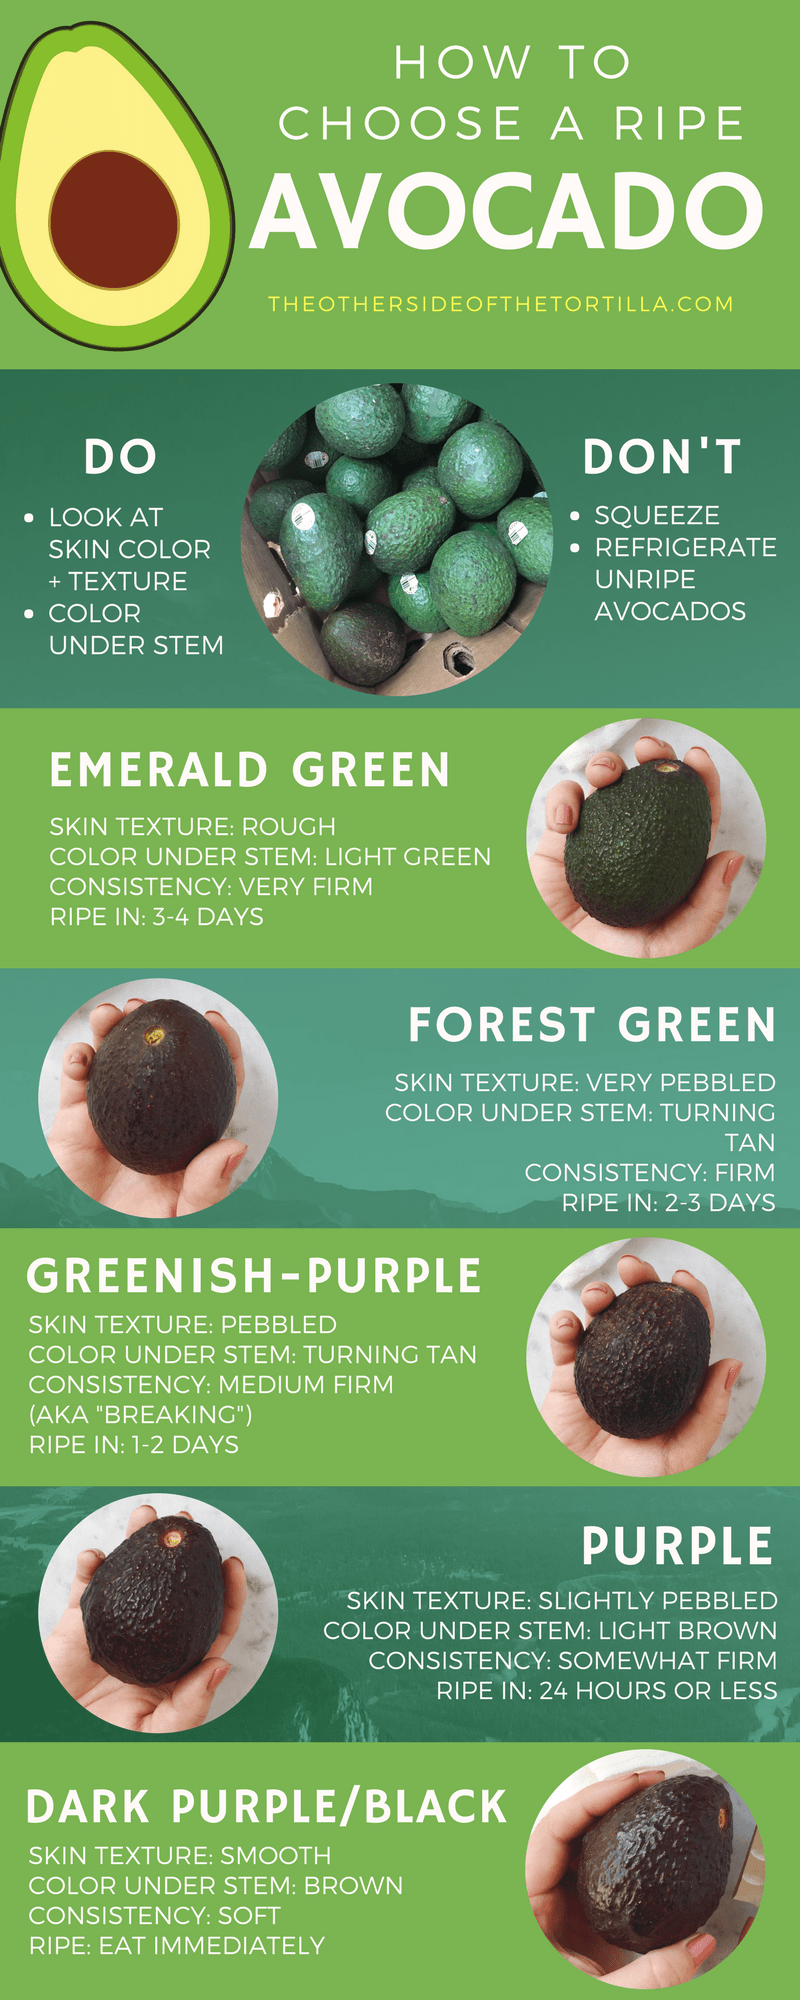 A guide on how to choose ripe avocados every time, via theothersideofthetortilla.com